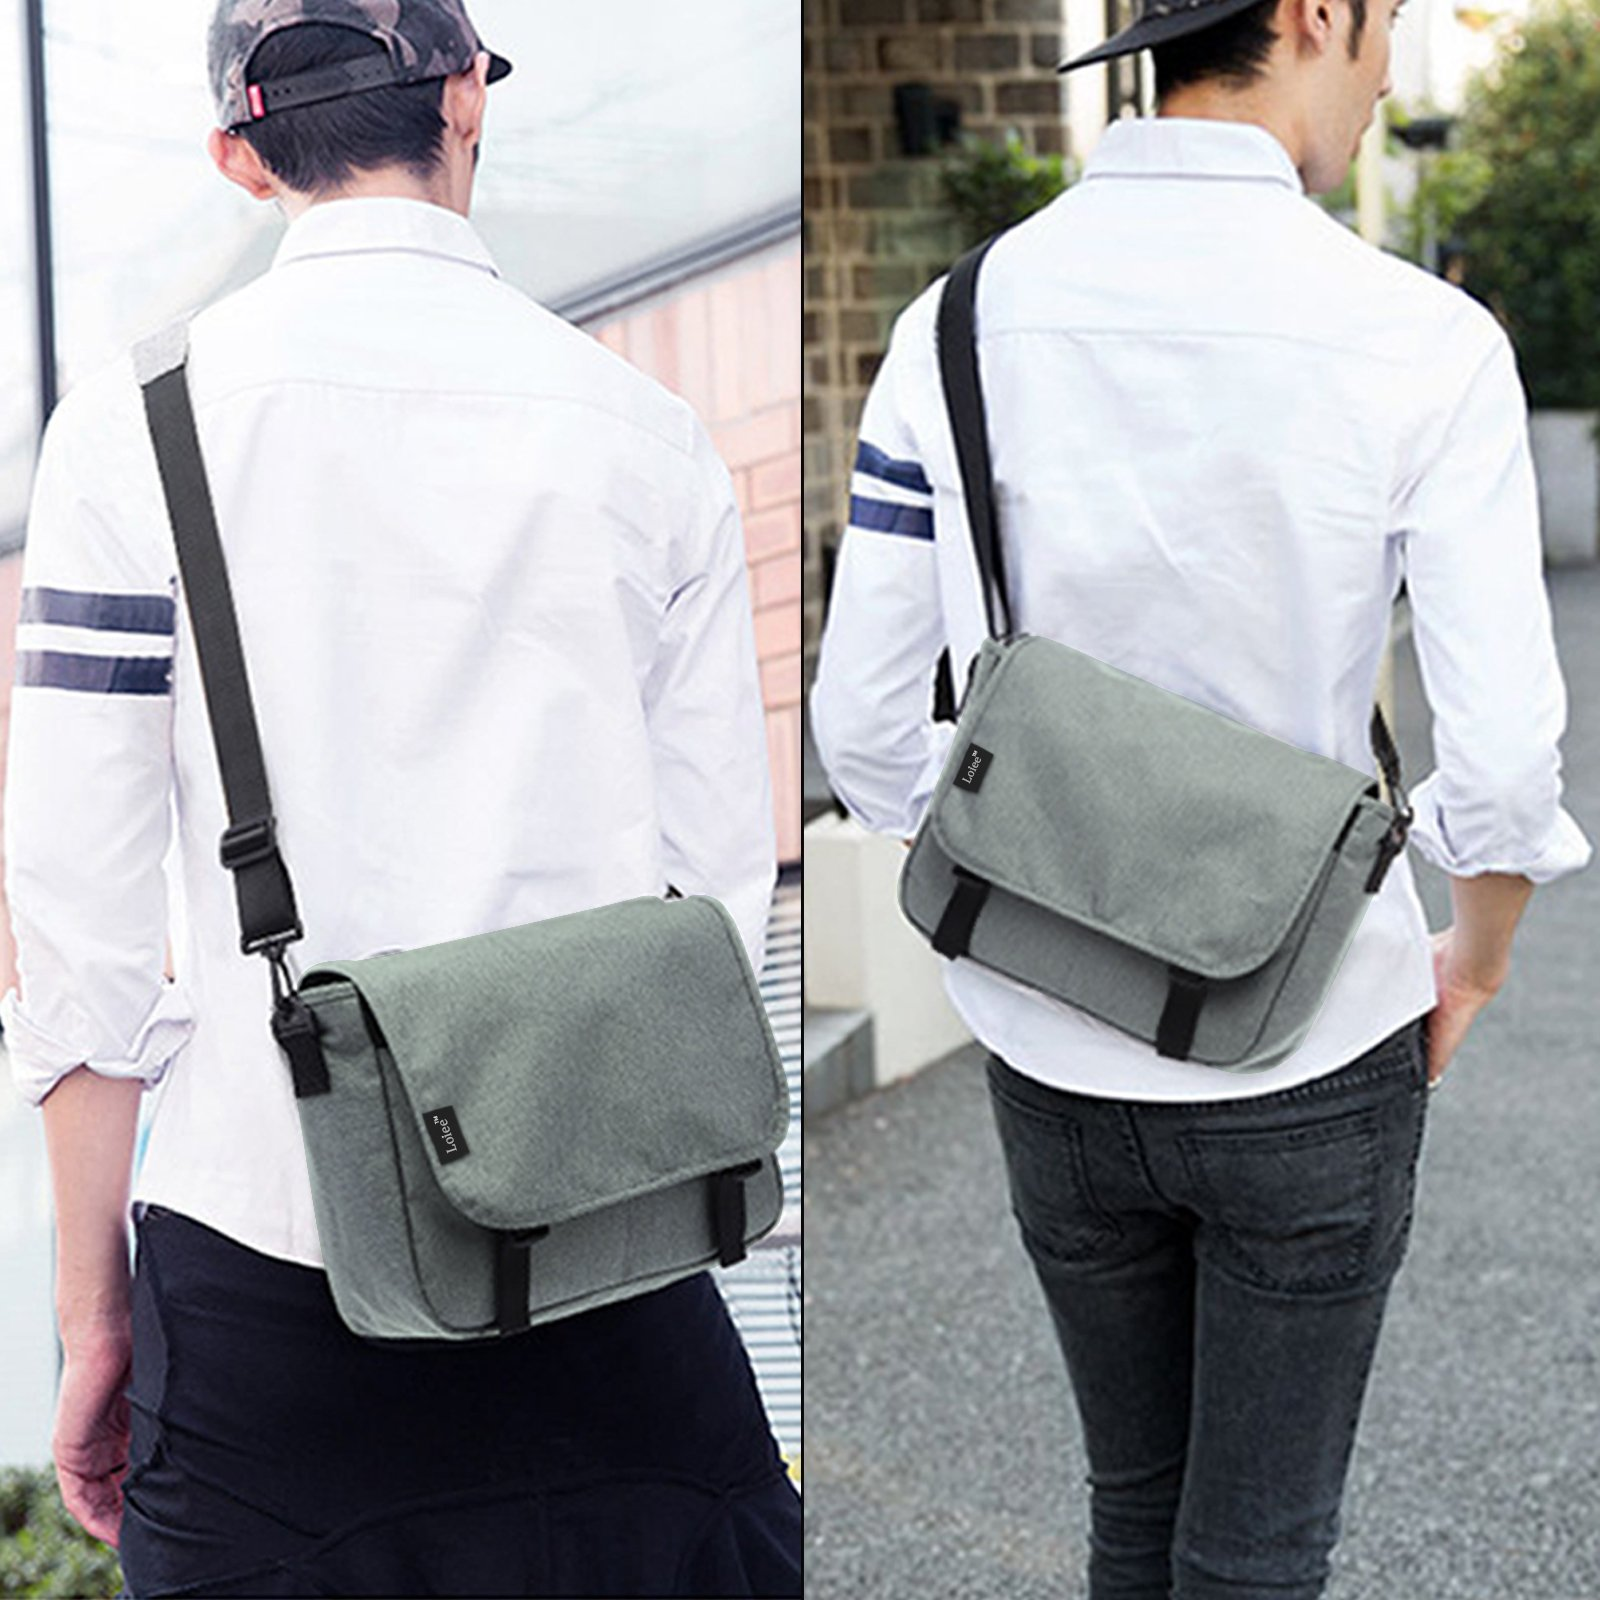 Loiee 14 inches Classic Canvas Messenger Bag,Water Resistant Vintage School Bag,Grey by Loiee (Image #7)